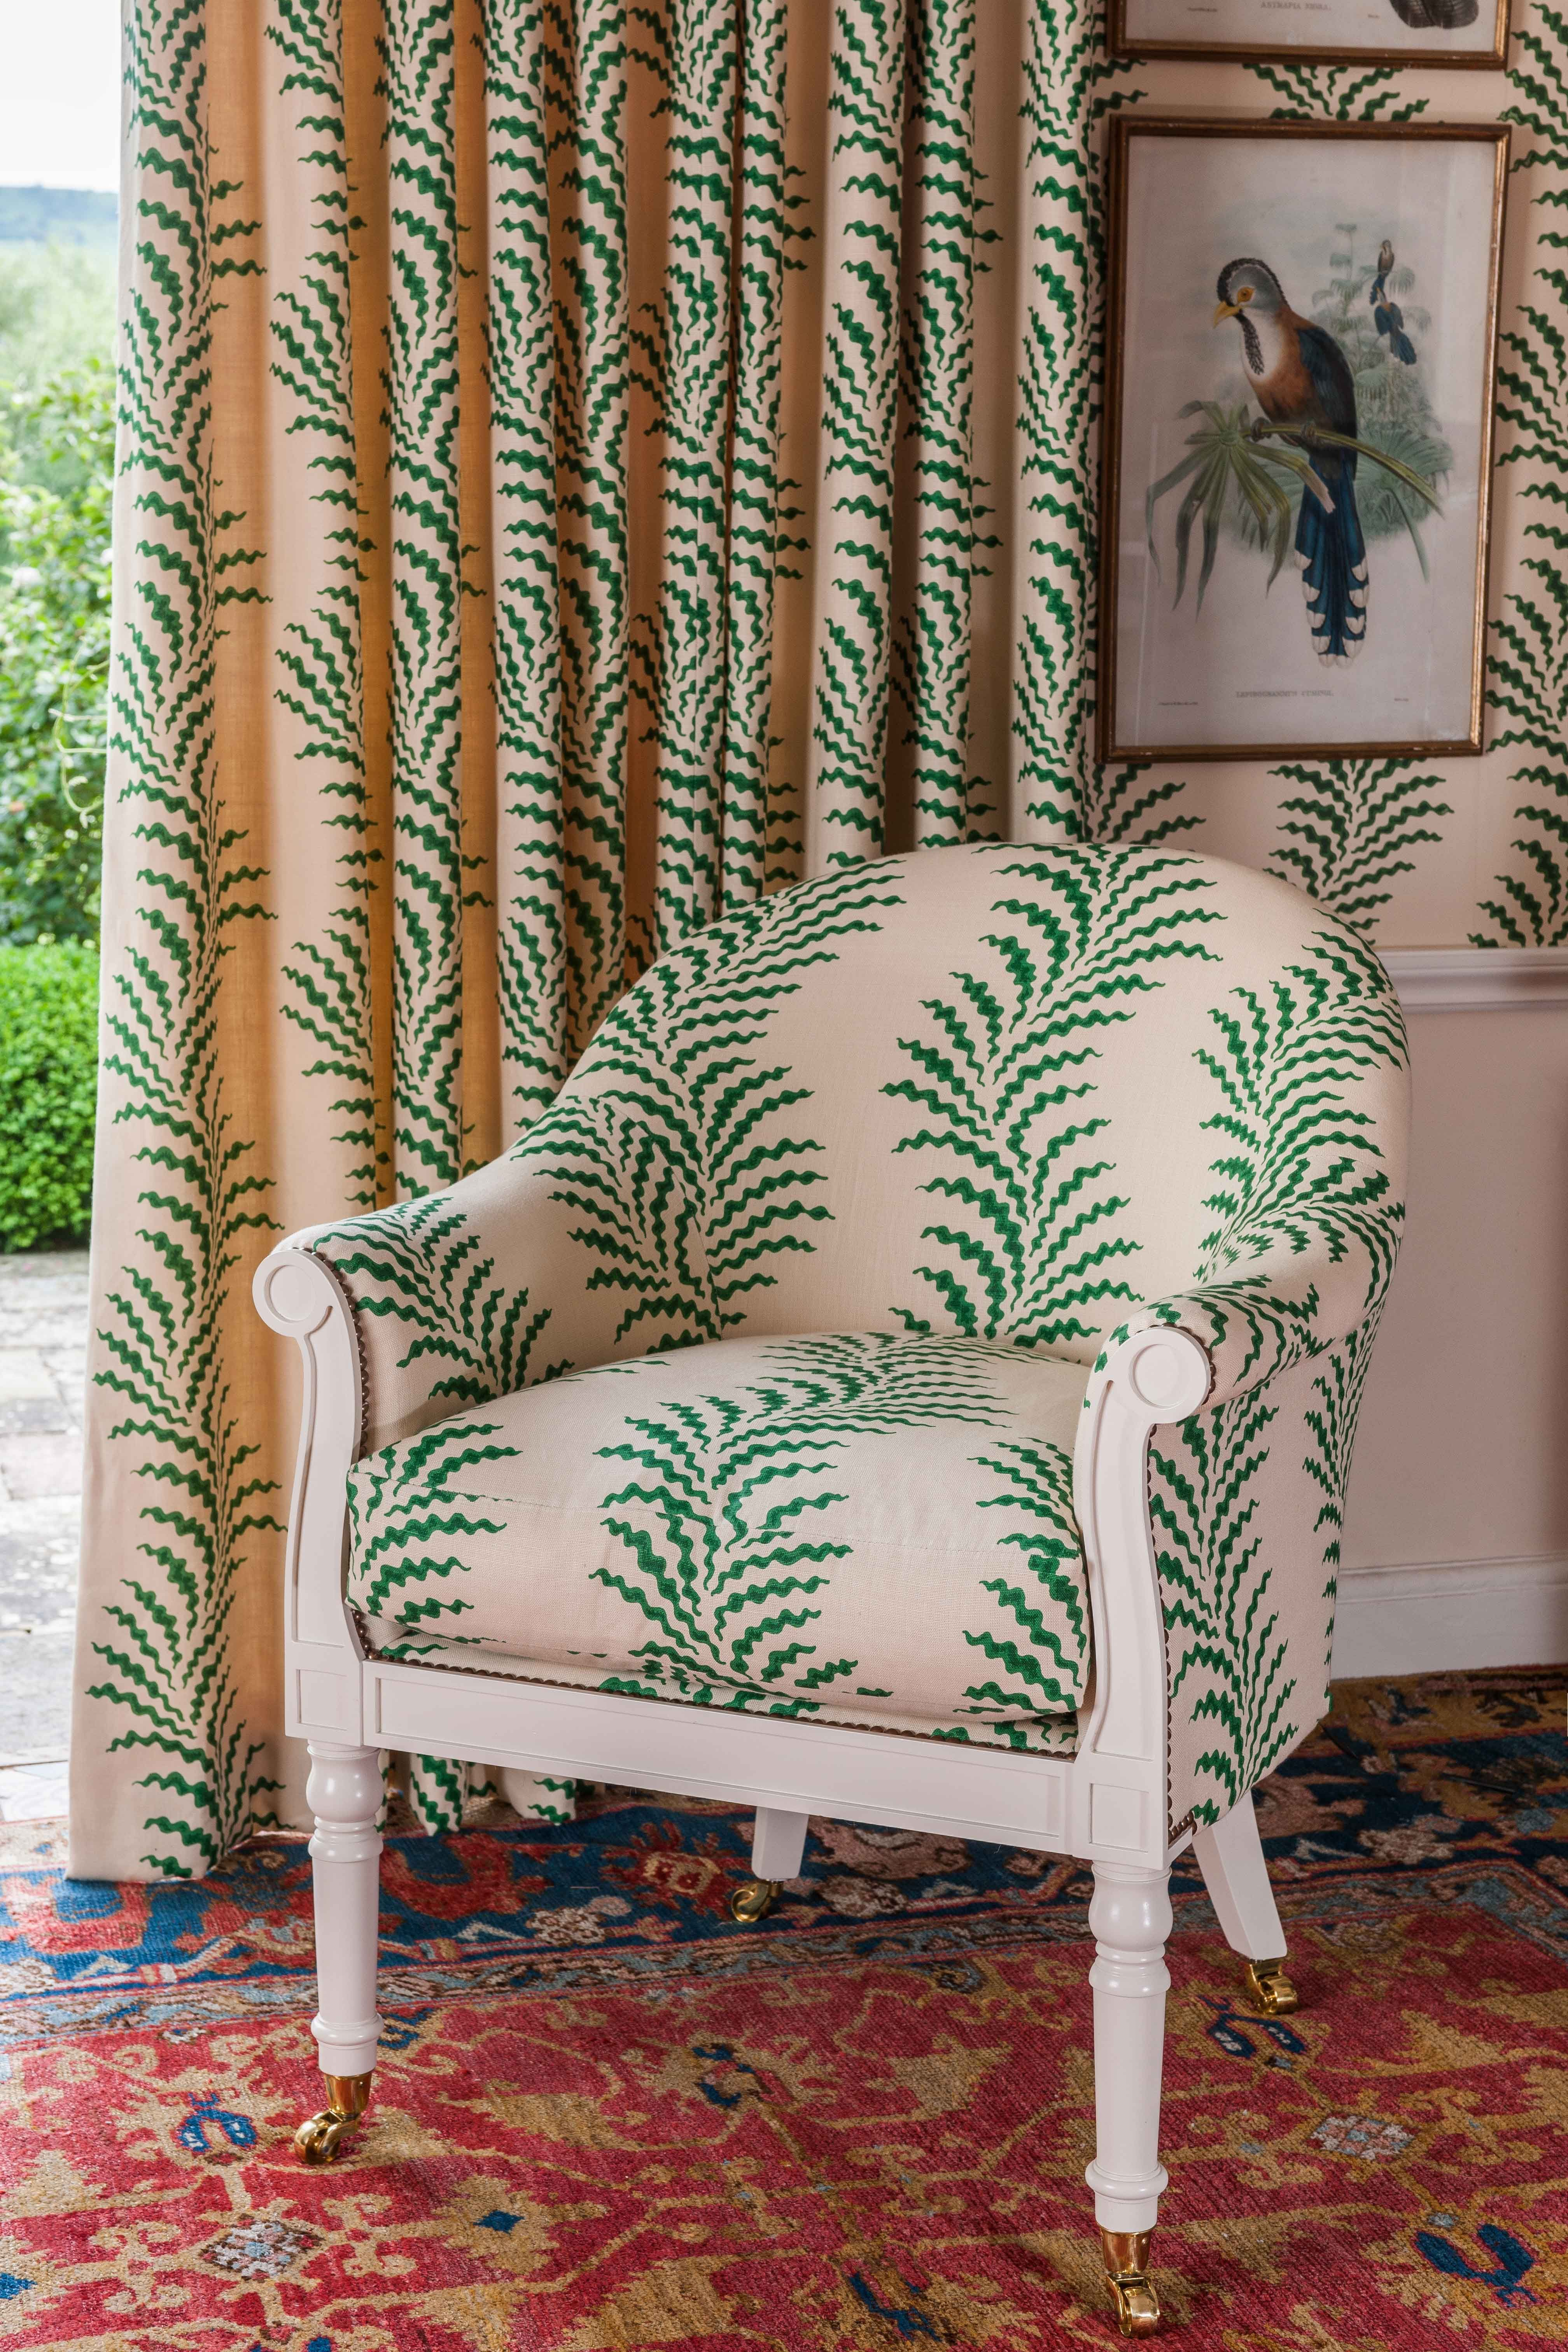 Soane Britains Spoonbill Chair upholstered in Scrolling Fern 4032x6048